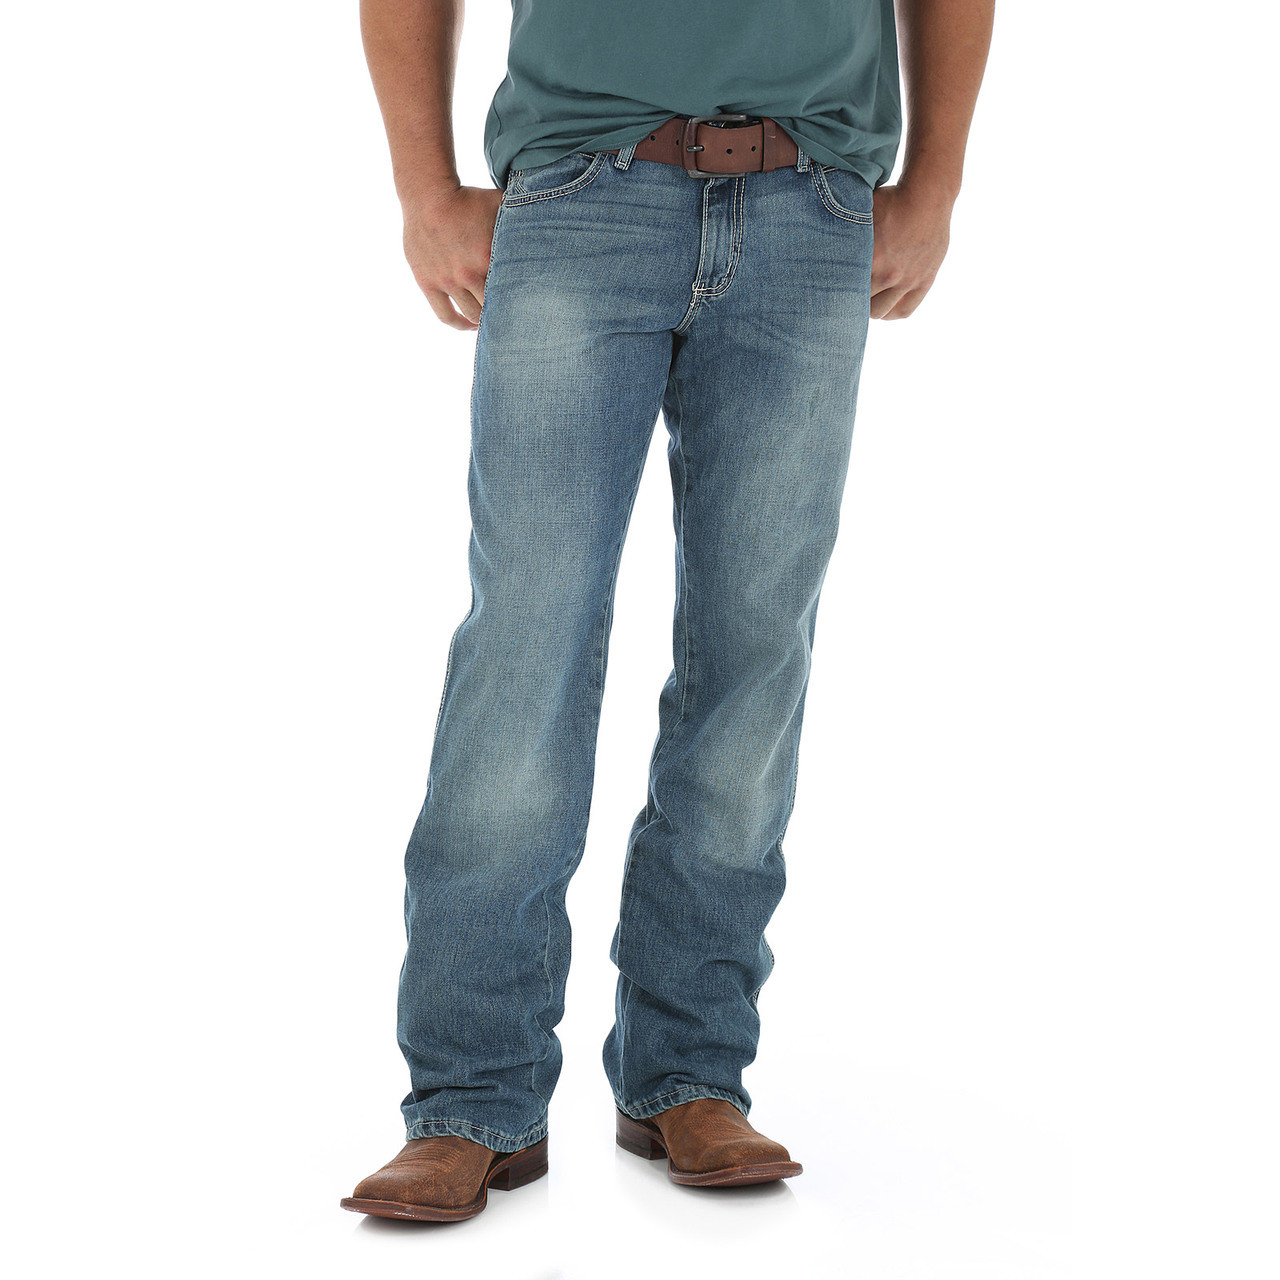 294cb8a3 ... Mens; Wrangler Retro Relaxed Boot Cut Jean - Rocky Top. Image 1